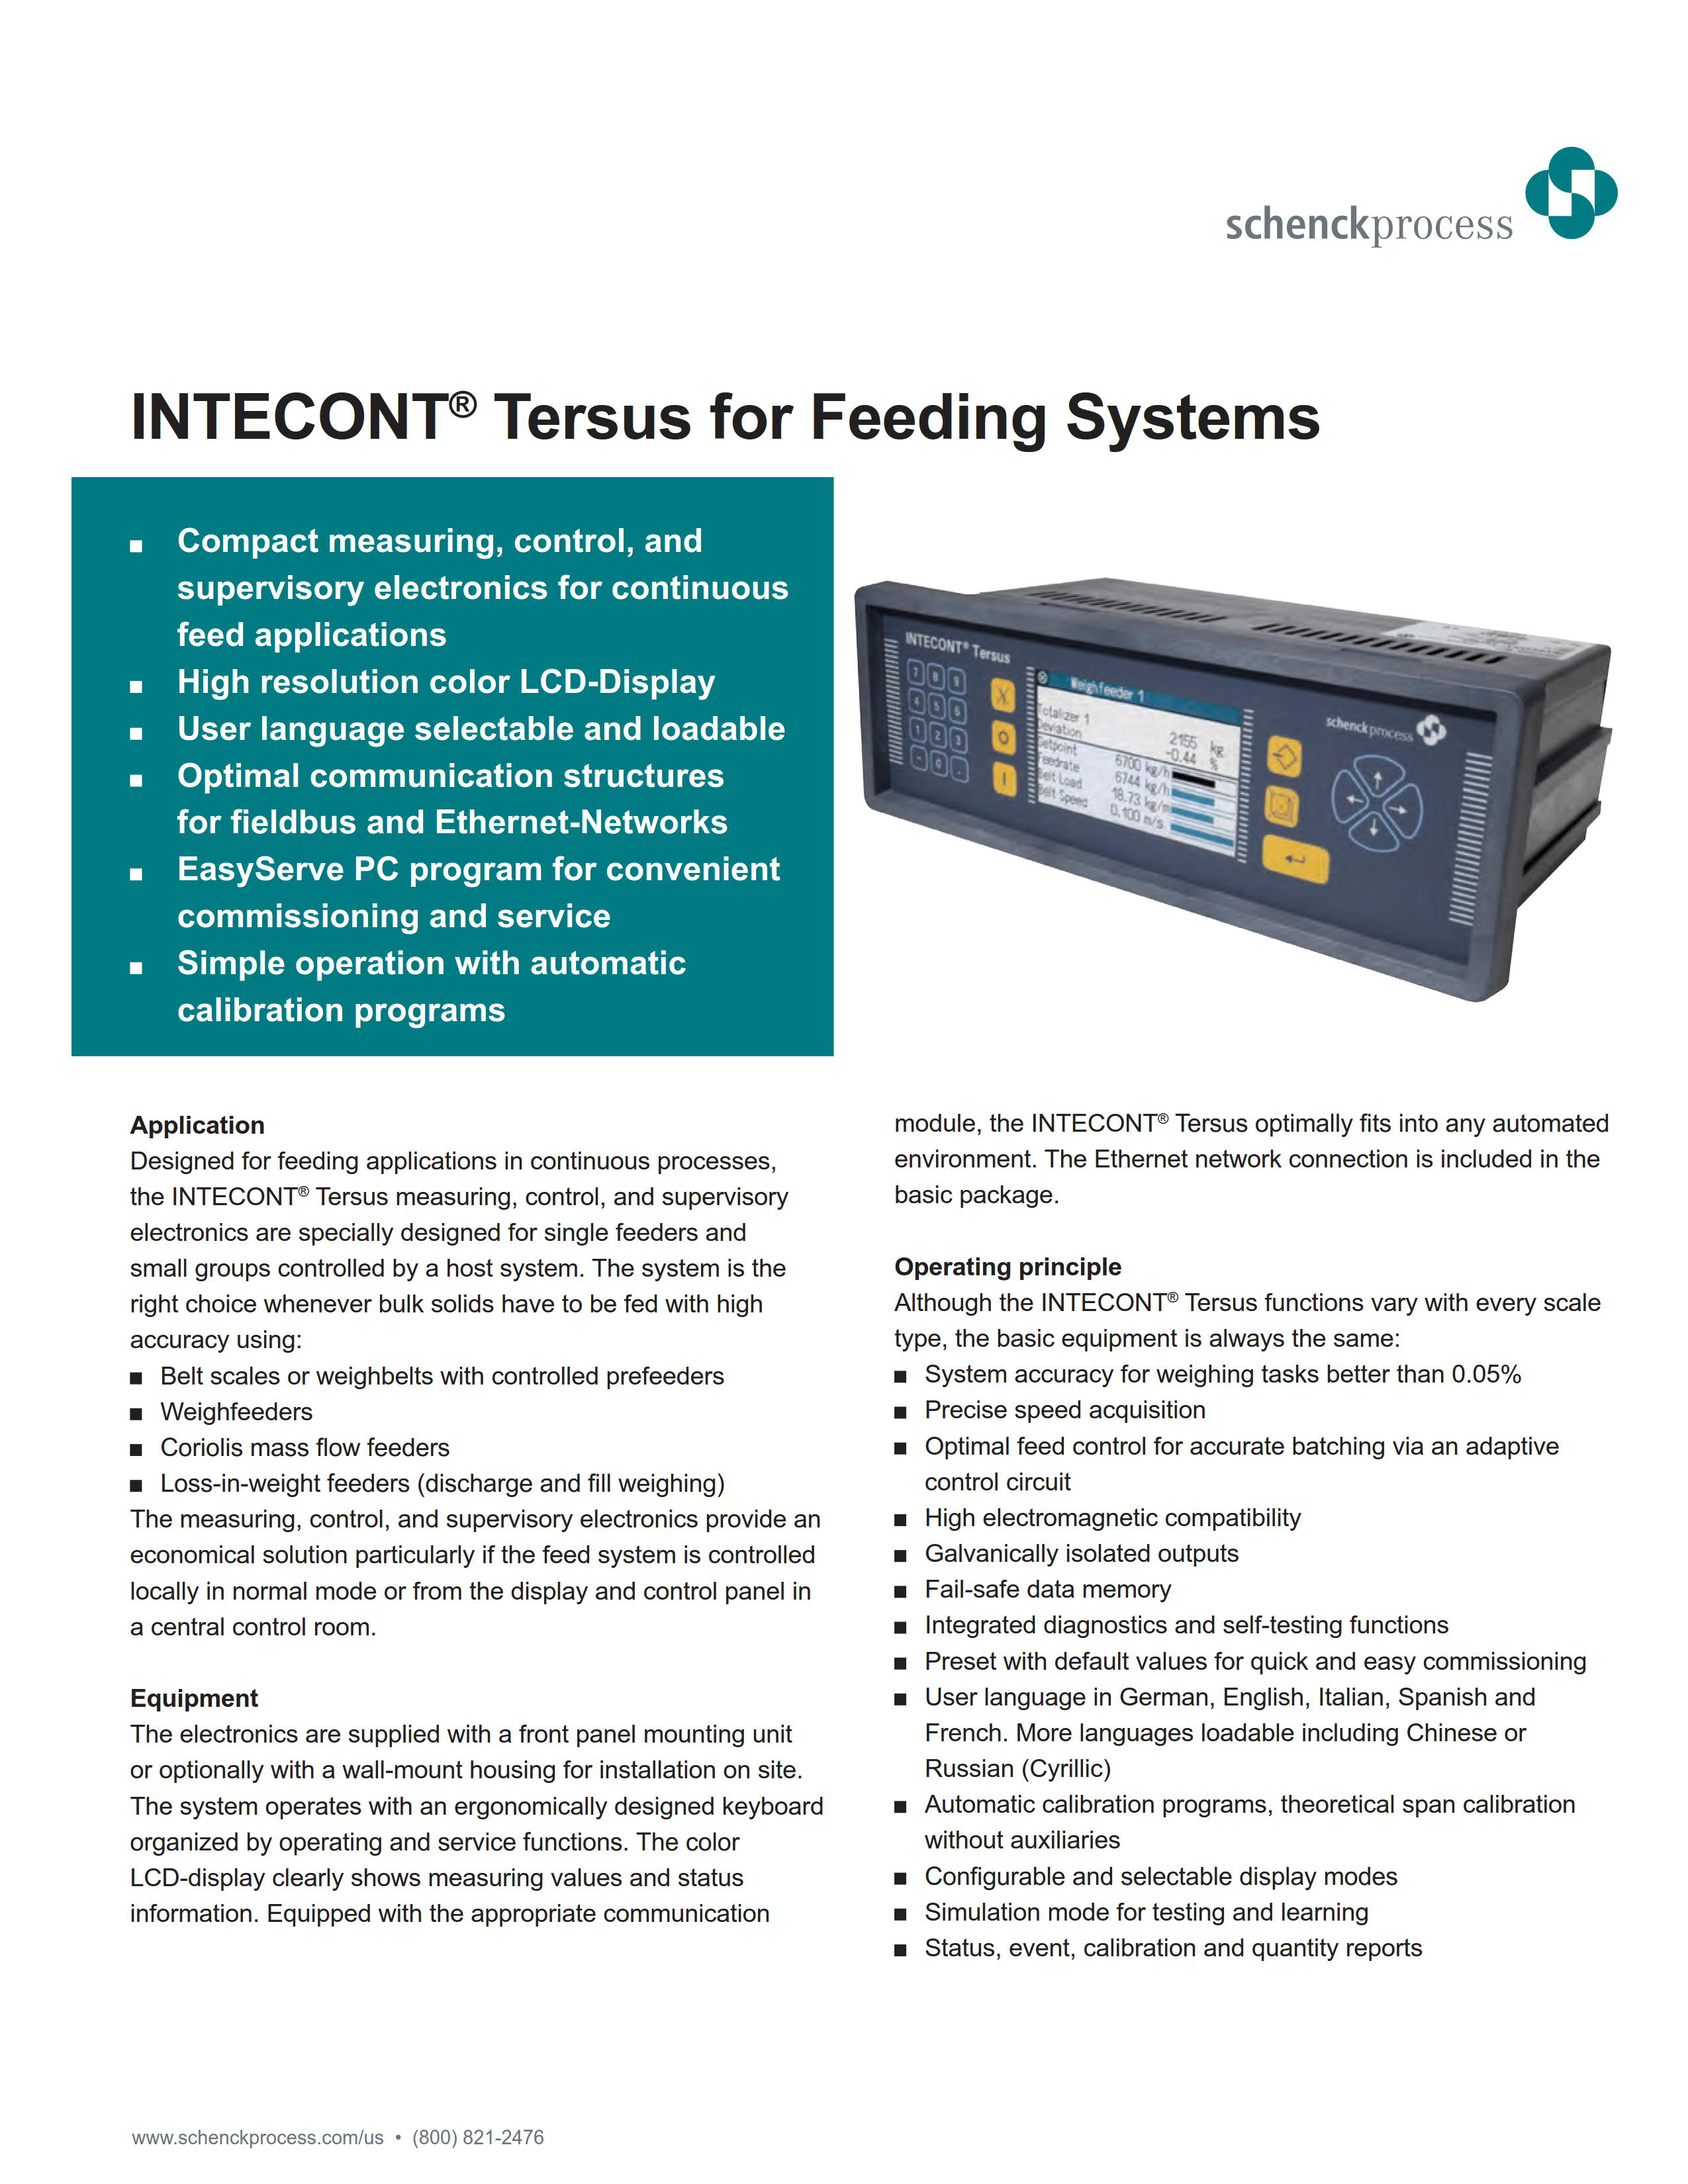 INTECONT Tersus for Feeding Systems